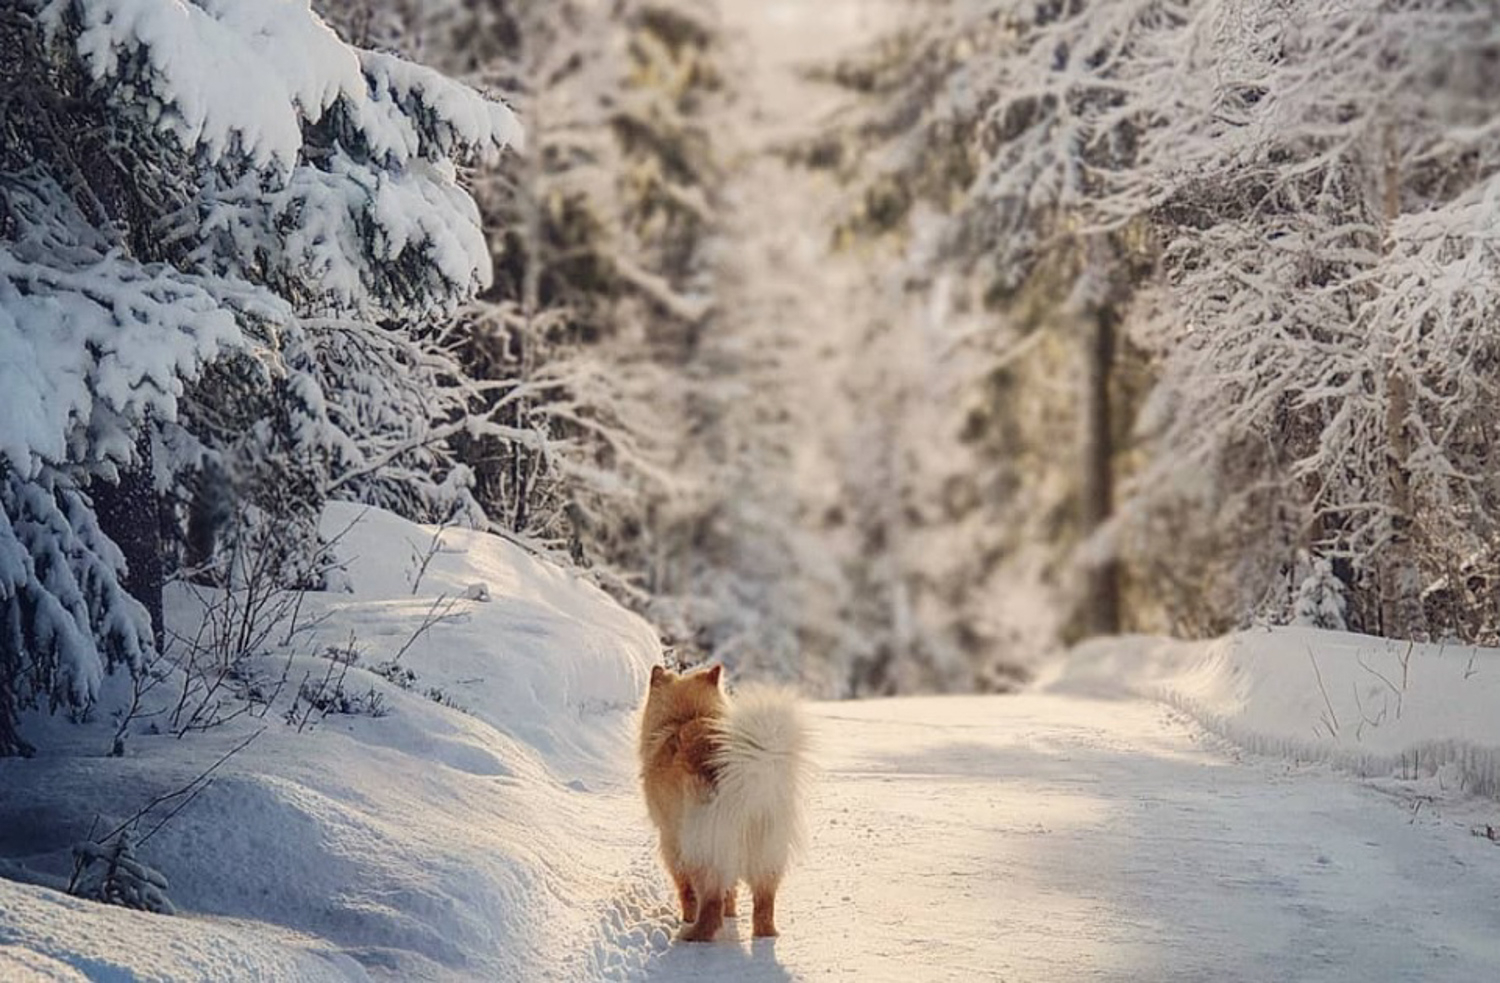 finsk lapphund winter landscape dog telemark Norway photography